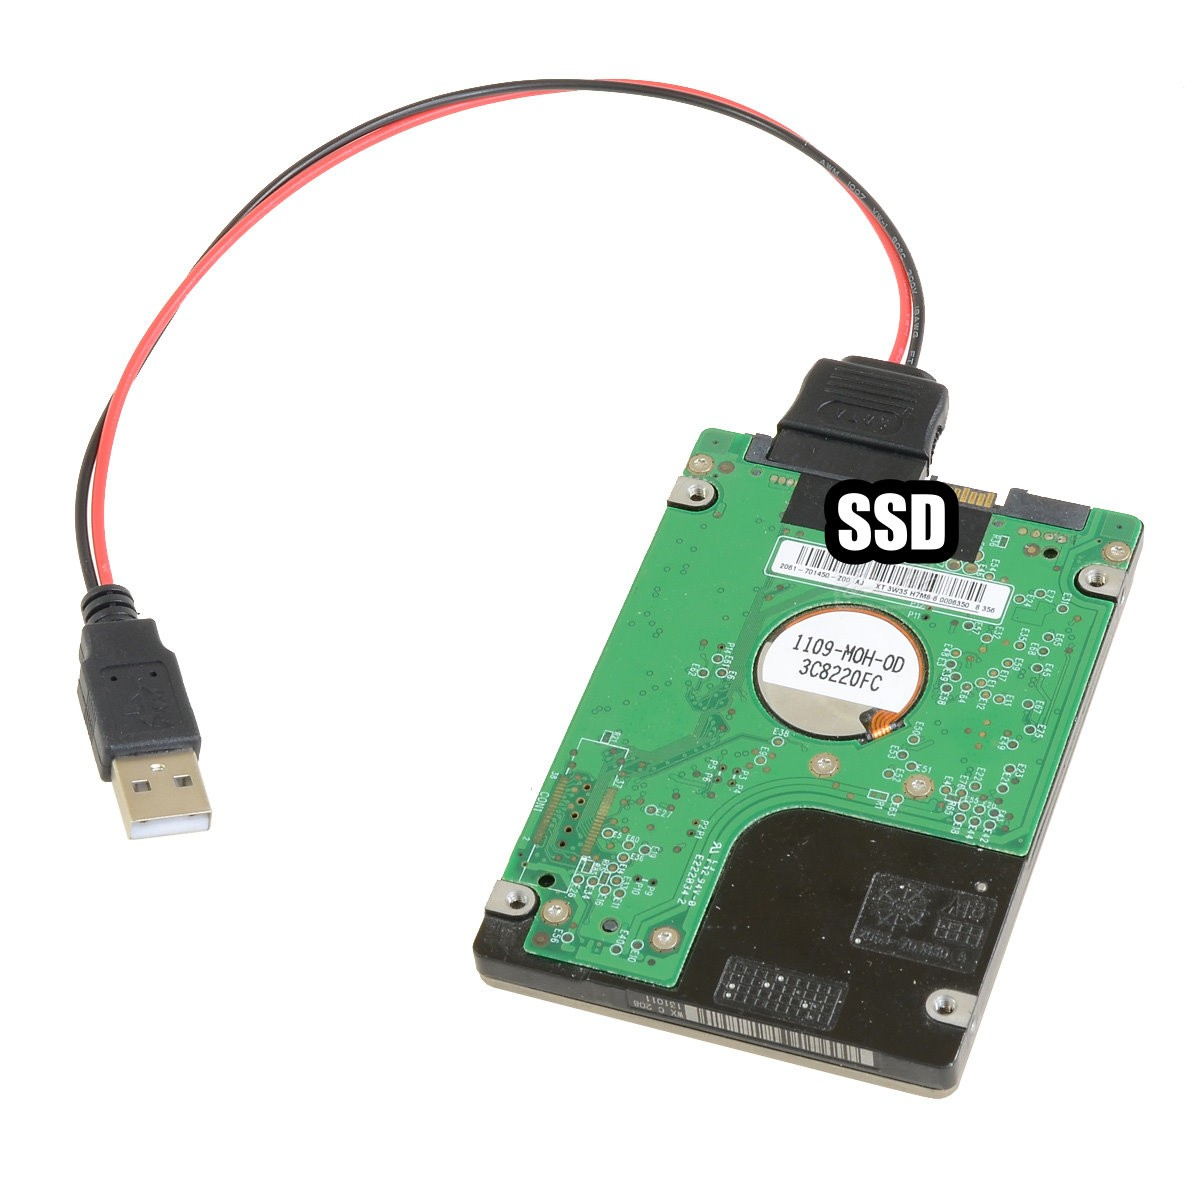 Sata Connector Wiring Diagram Schematic Usb To Cable Best Of Image Tag